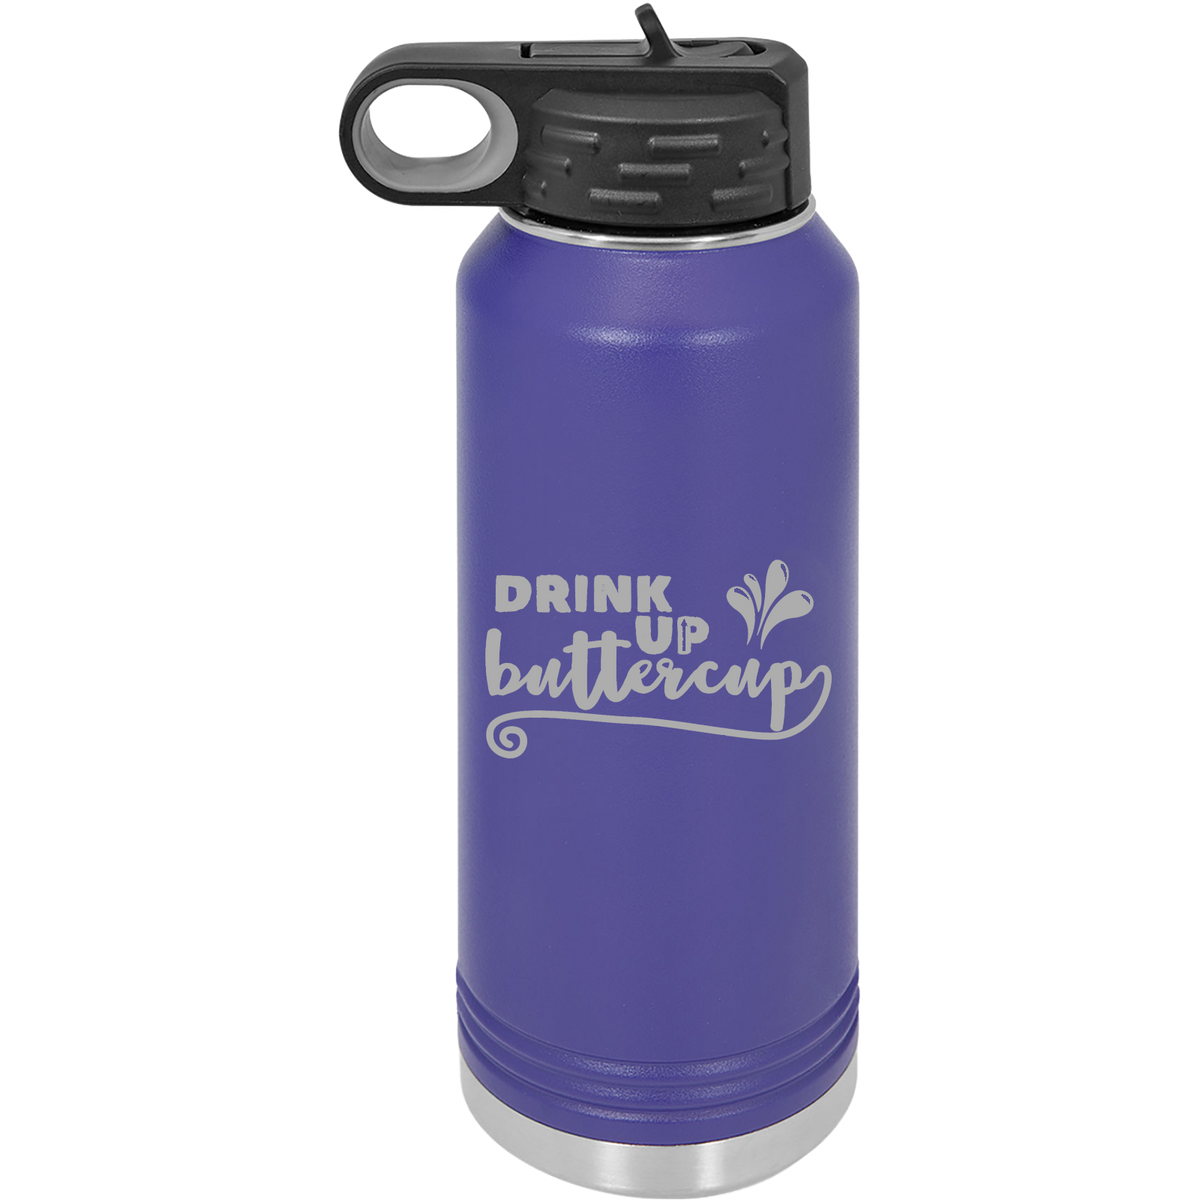 Drink up buttercup - 32oz. Engraved Water Bottle with Flip Lid & Straw